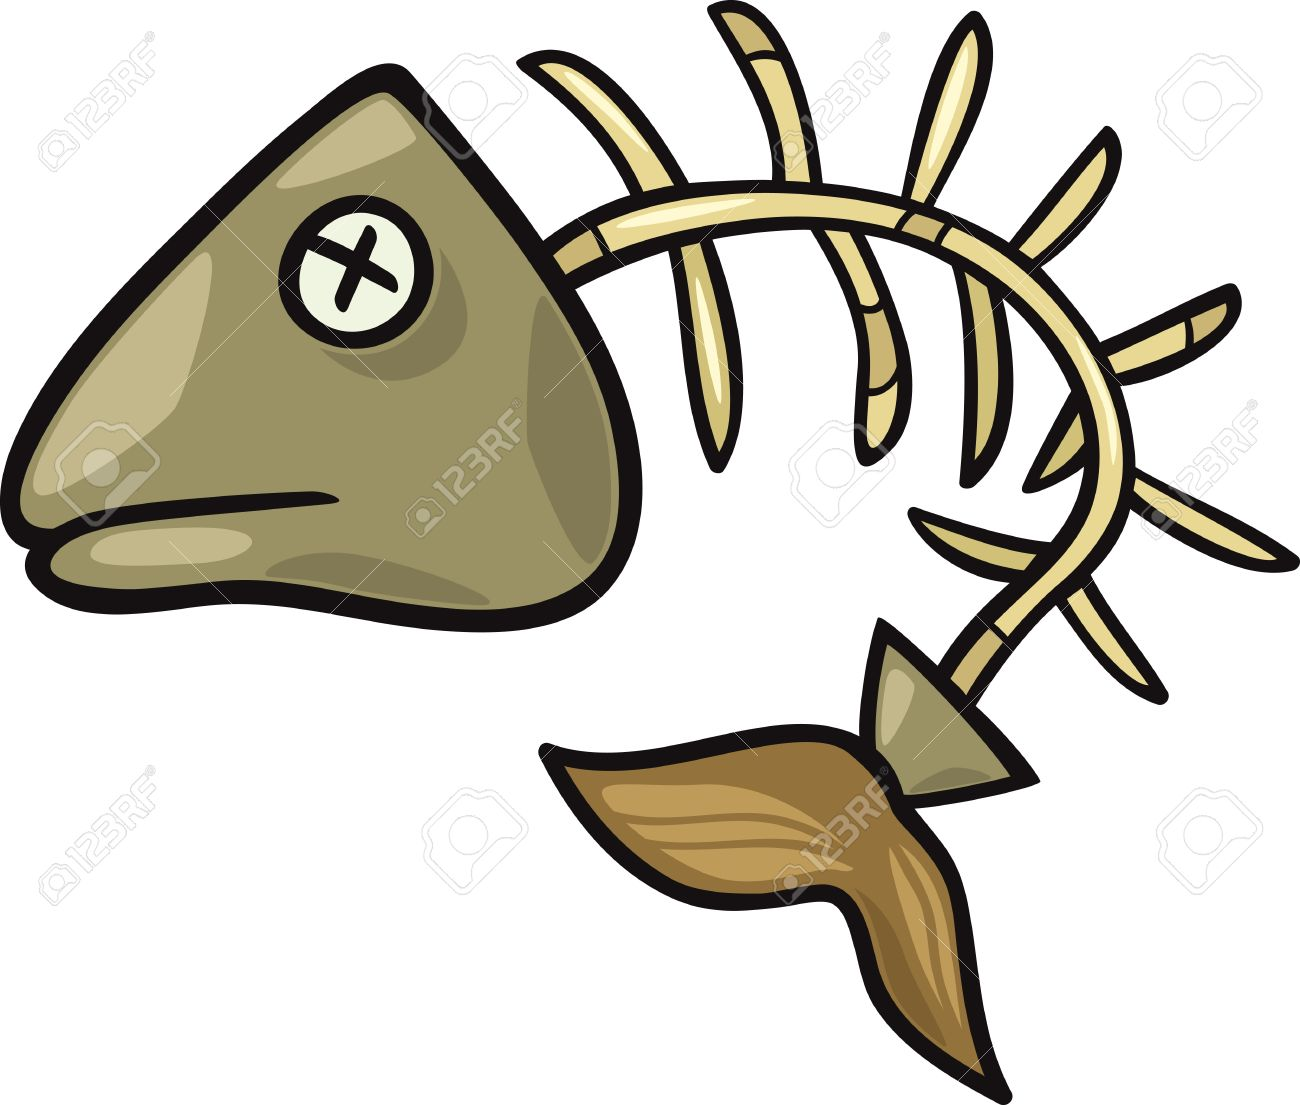 Dead animal clipart jpg freeuse library cartoon dead fish Dead animal clipart free download on jpg - Clipartix jpg freeuse library